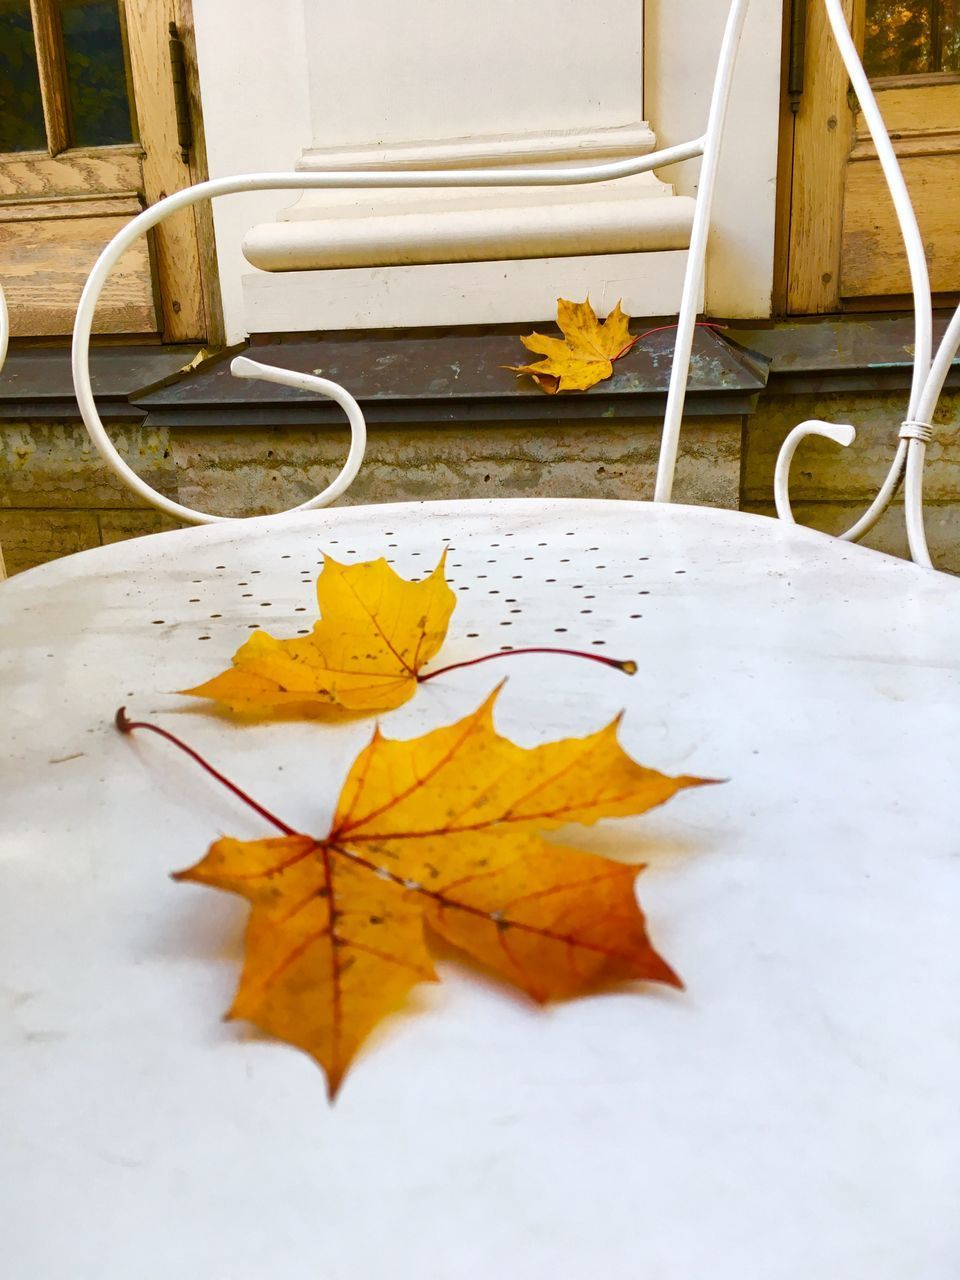 change, no people, leaf, plant part, autumn, nature, white color, day, close-up, yellow, outdoors, seat, still life, leaves, fragility, vulnerability, orange color, plant, table, dry, maple leaf